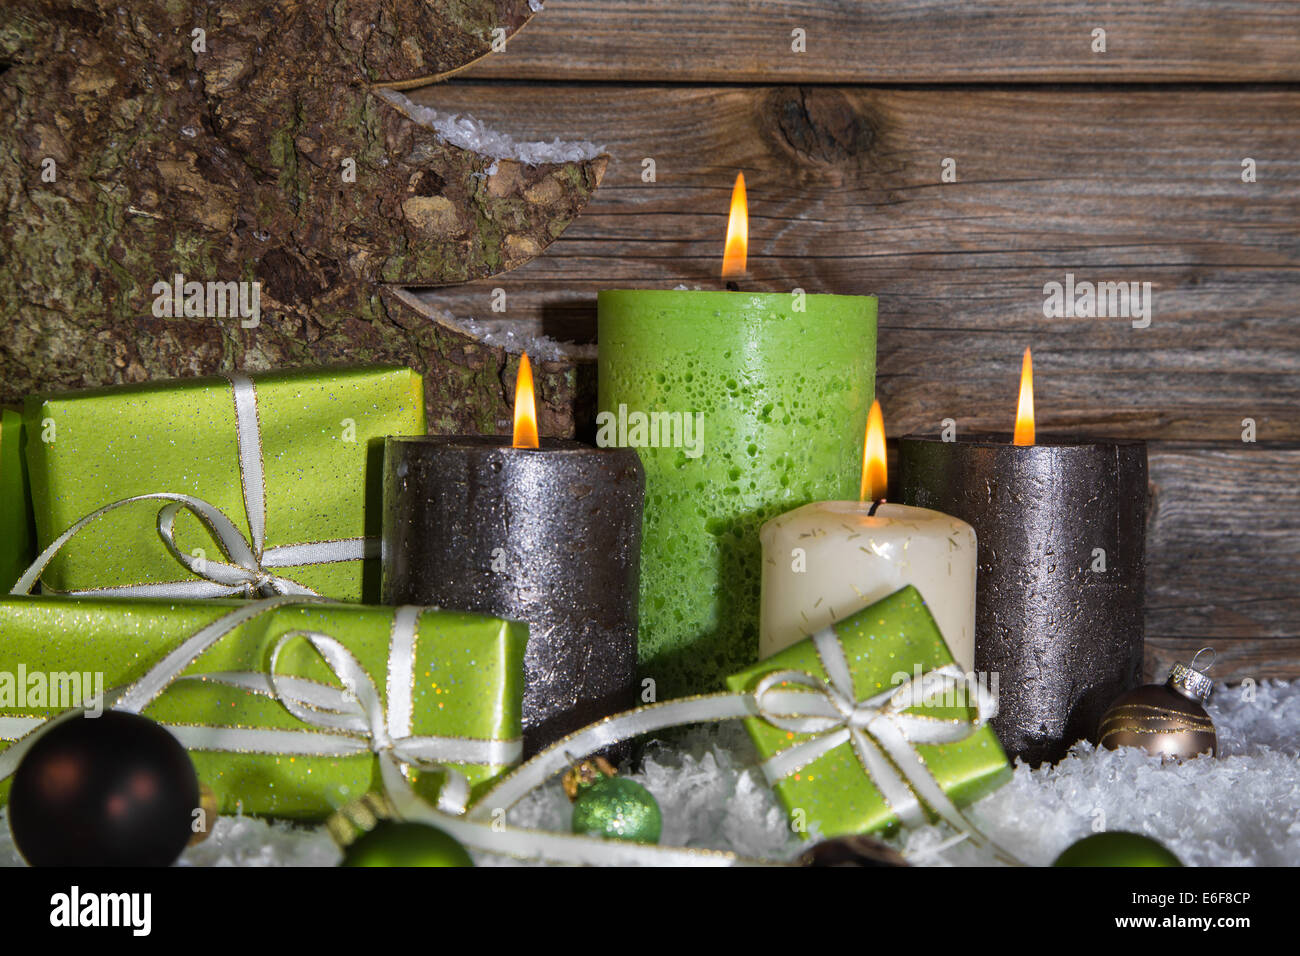 Burning Candles And Present Stock Photos Amp Burning Candles